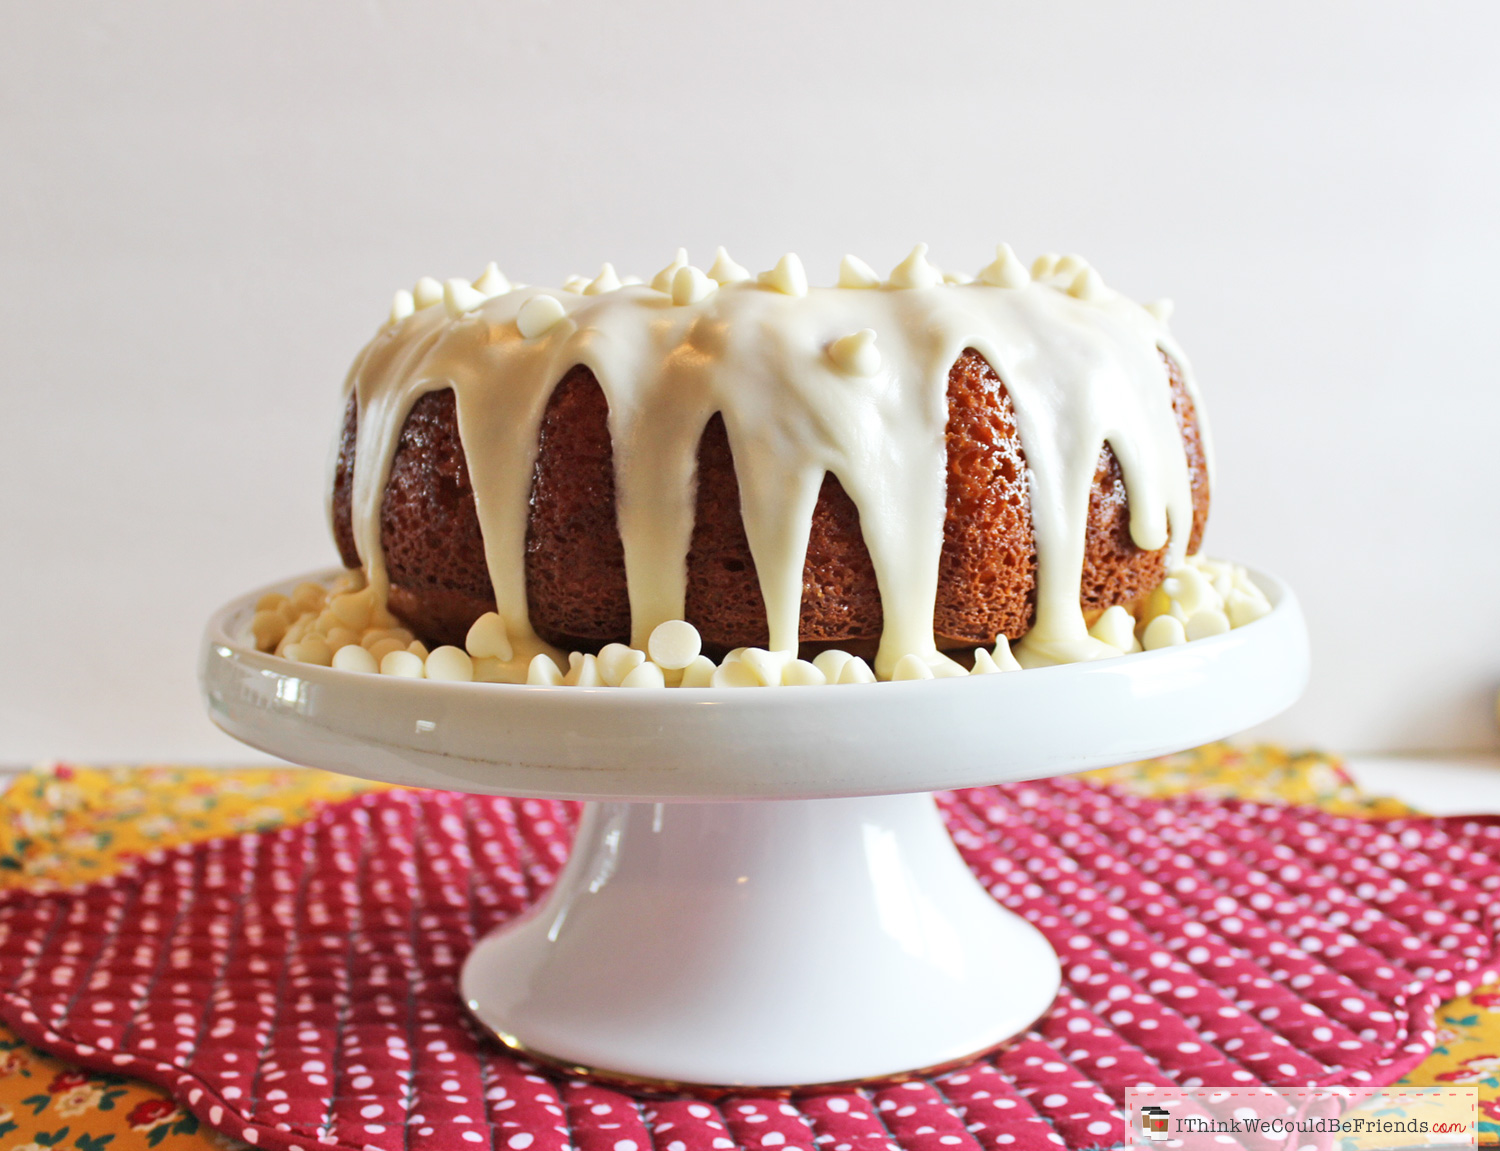 Anything But Bundt Cakes